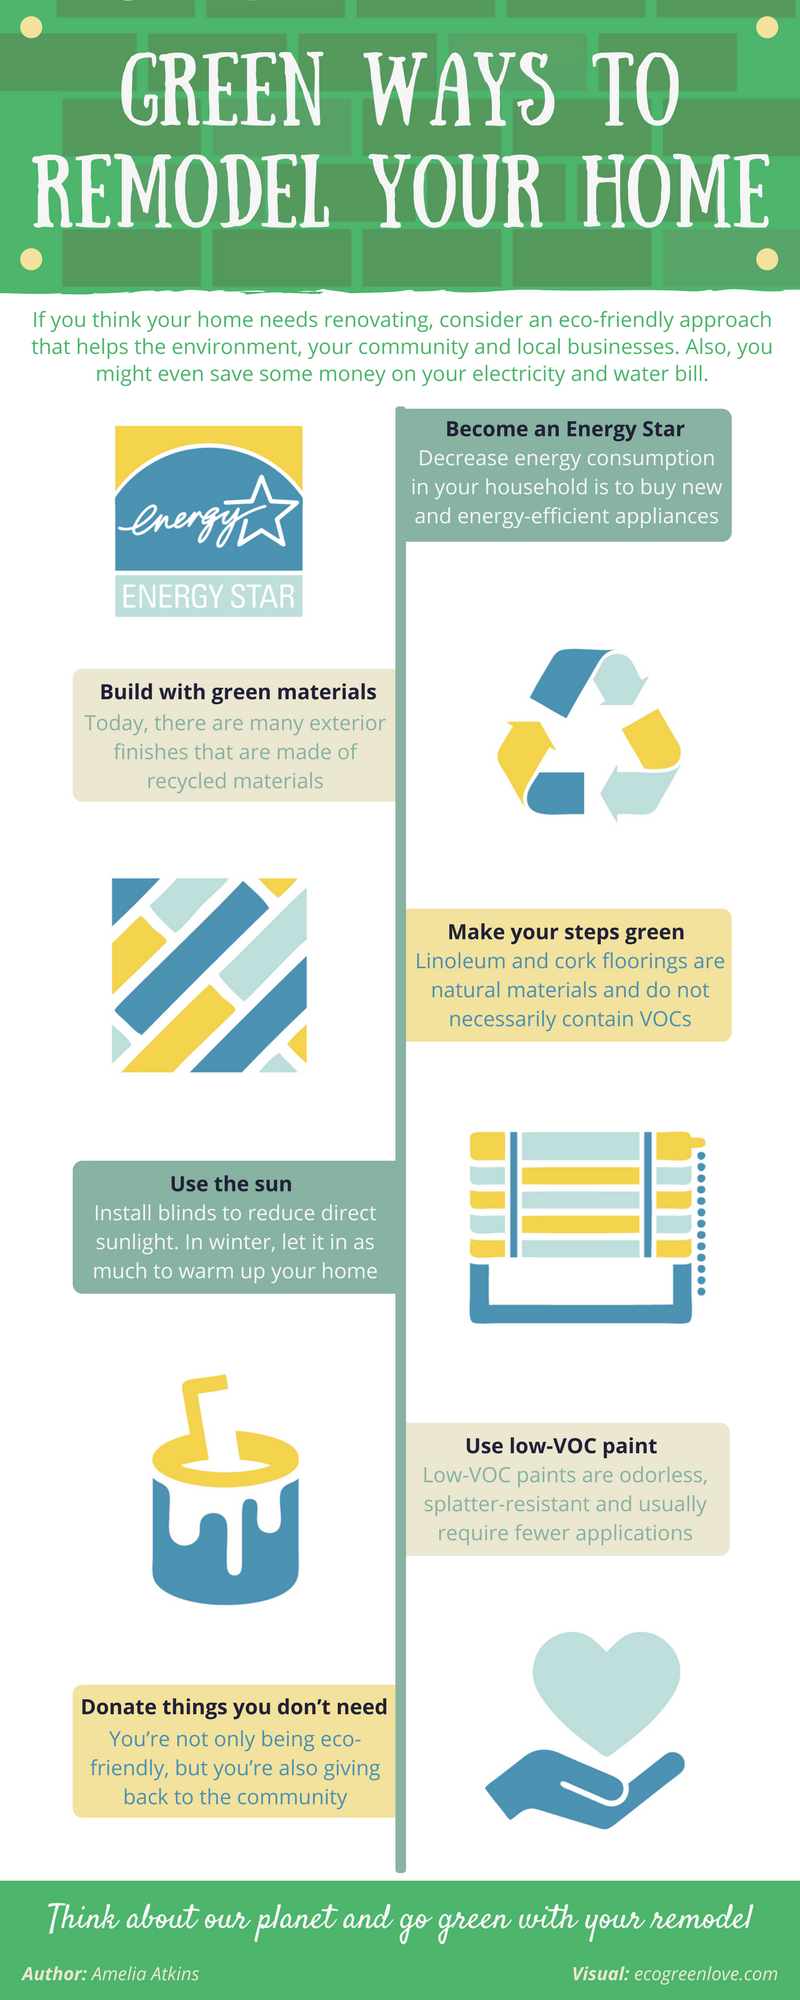 Green Ways to Remodel Your Home [Infographic]   ecogreenlove